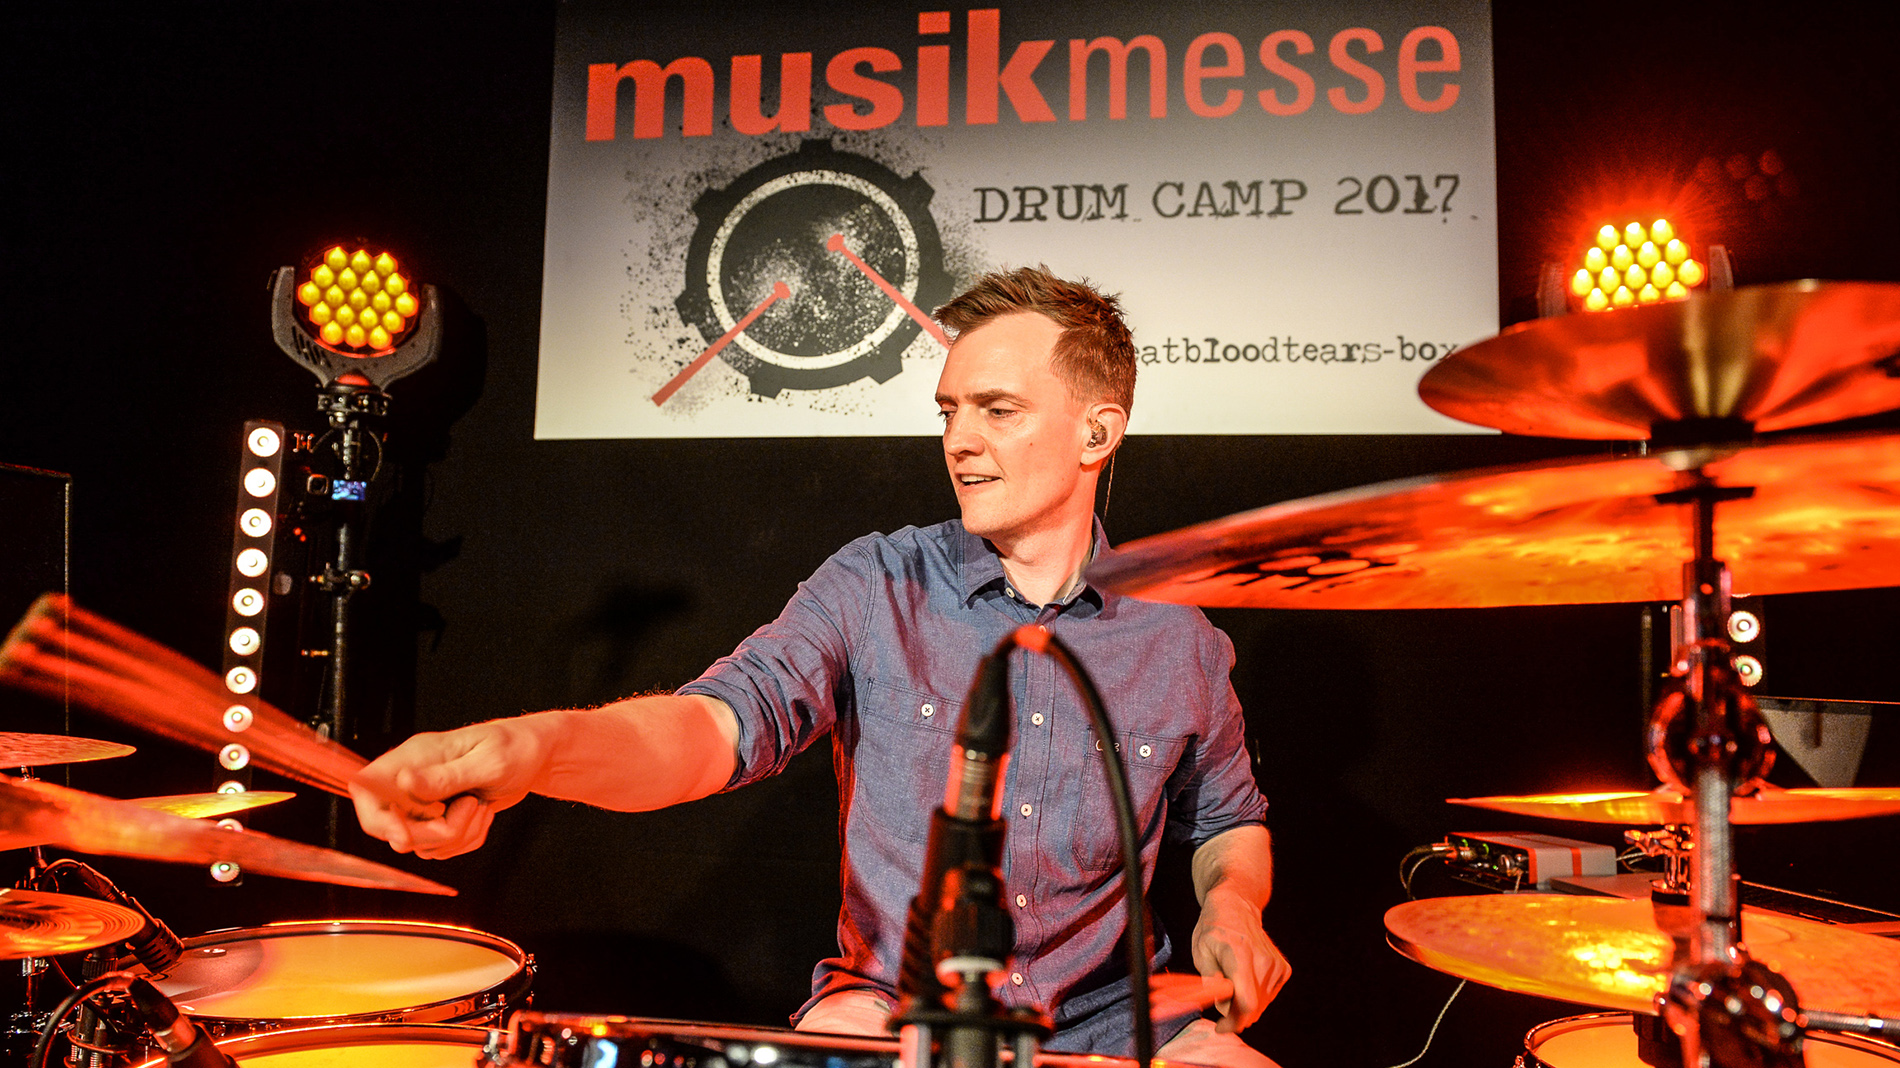 Drummer at the Drum Camp at Musikmesse in Frankfurt am Main